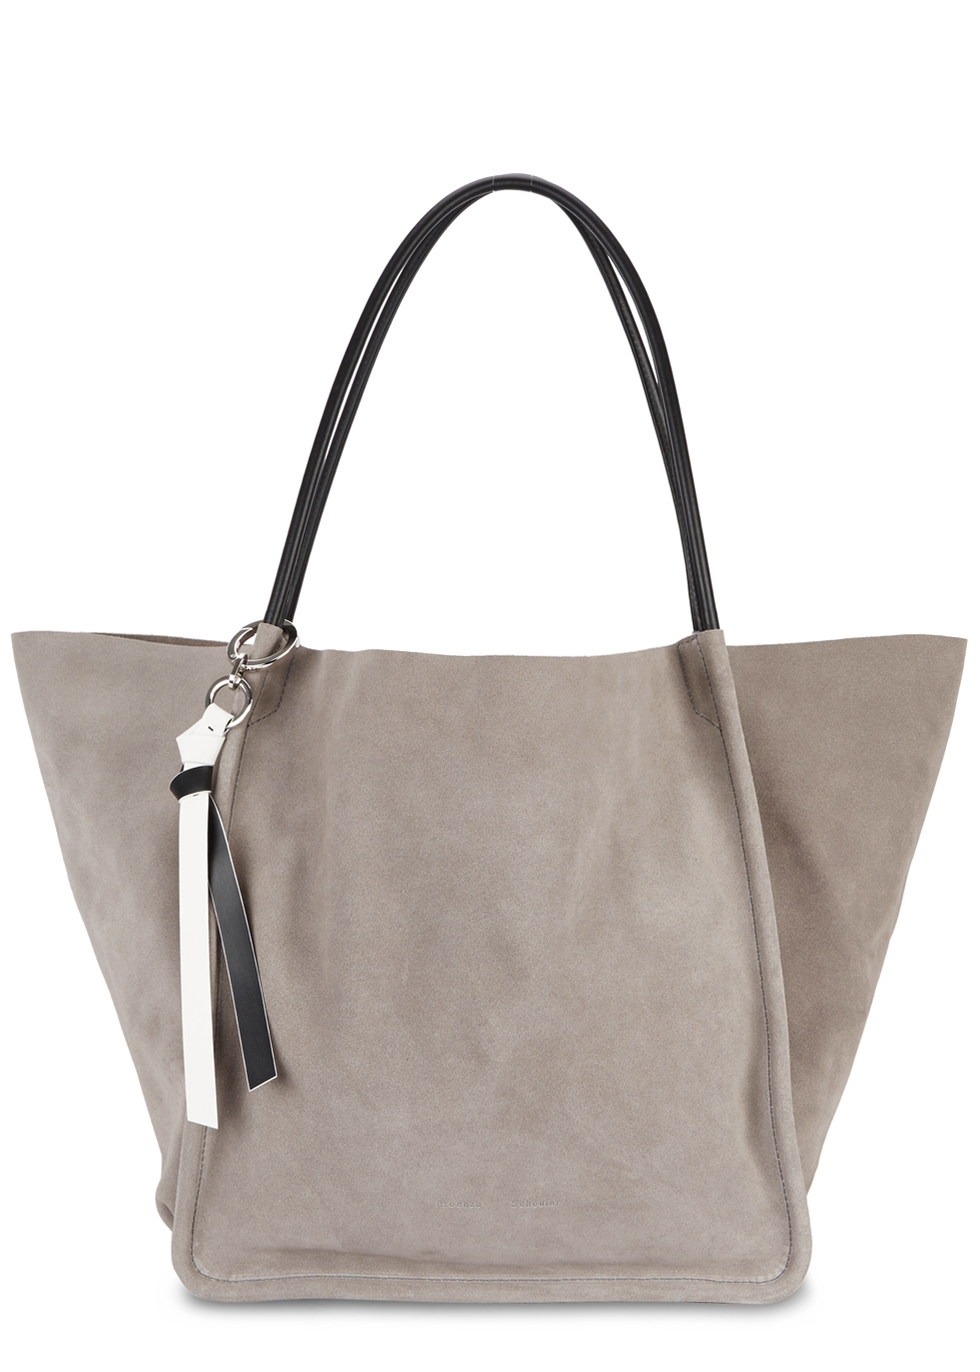 EXTRA LARGE LIGHT TAUPE SUEDE TOTE